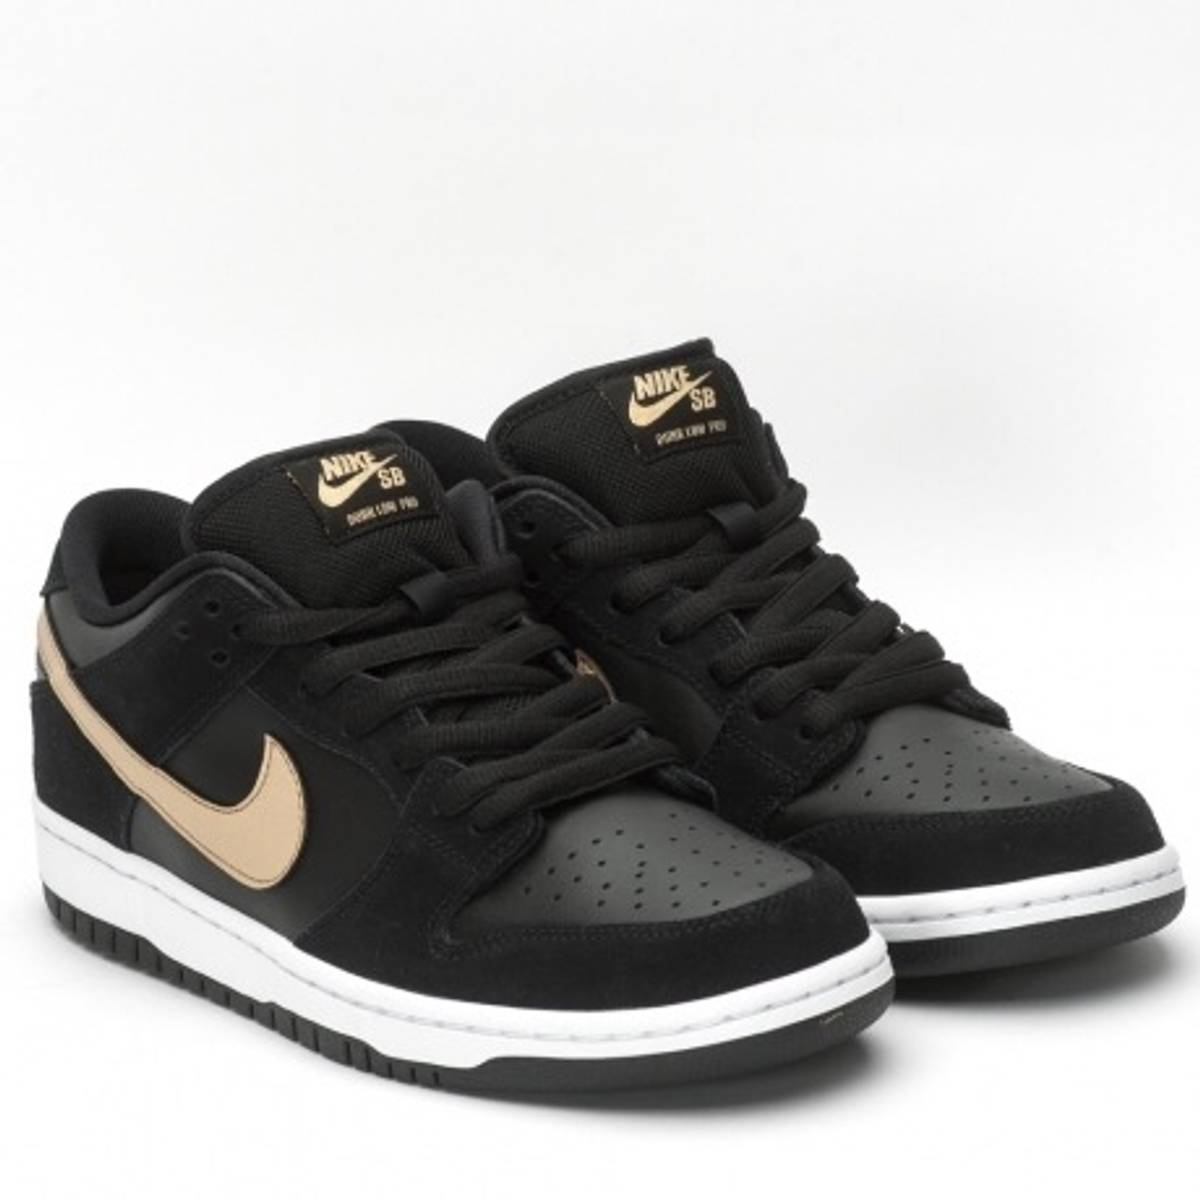 "Nike Nike SB Dunk Low Pro ""Takashi 2019"" Size 11 - Low-Top Sneakers for  Sale - Grailed 148d7a01f"